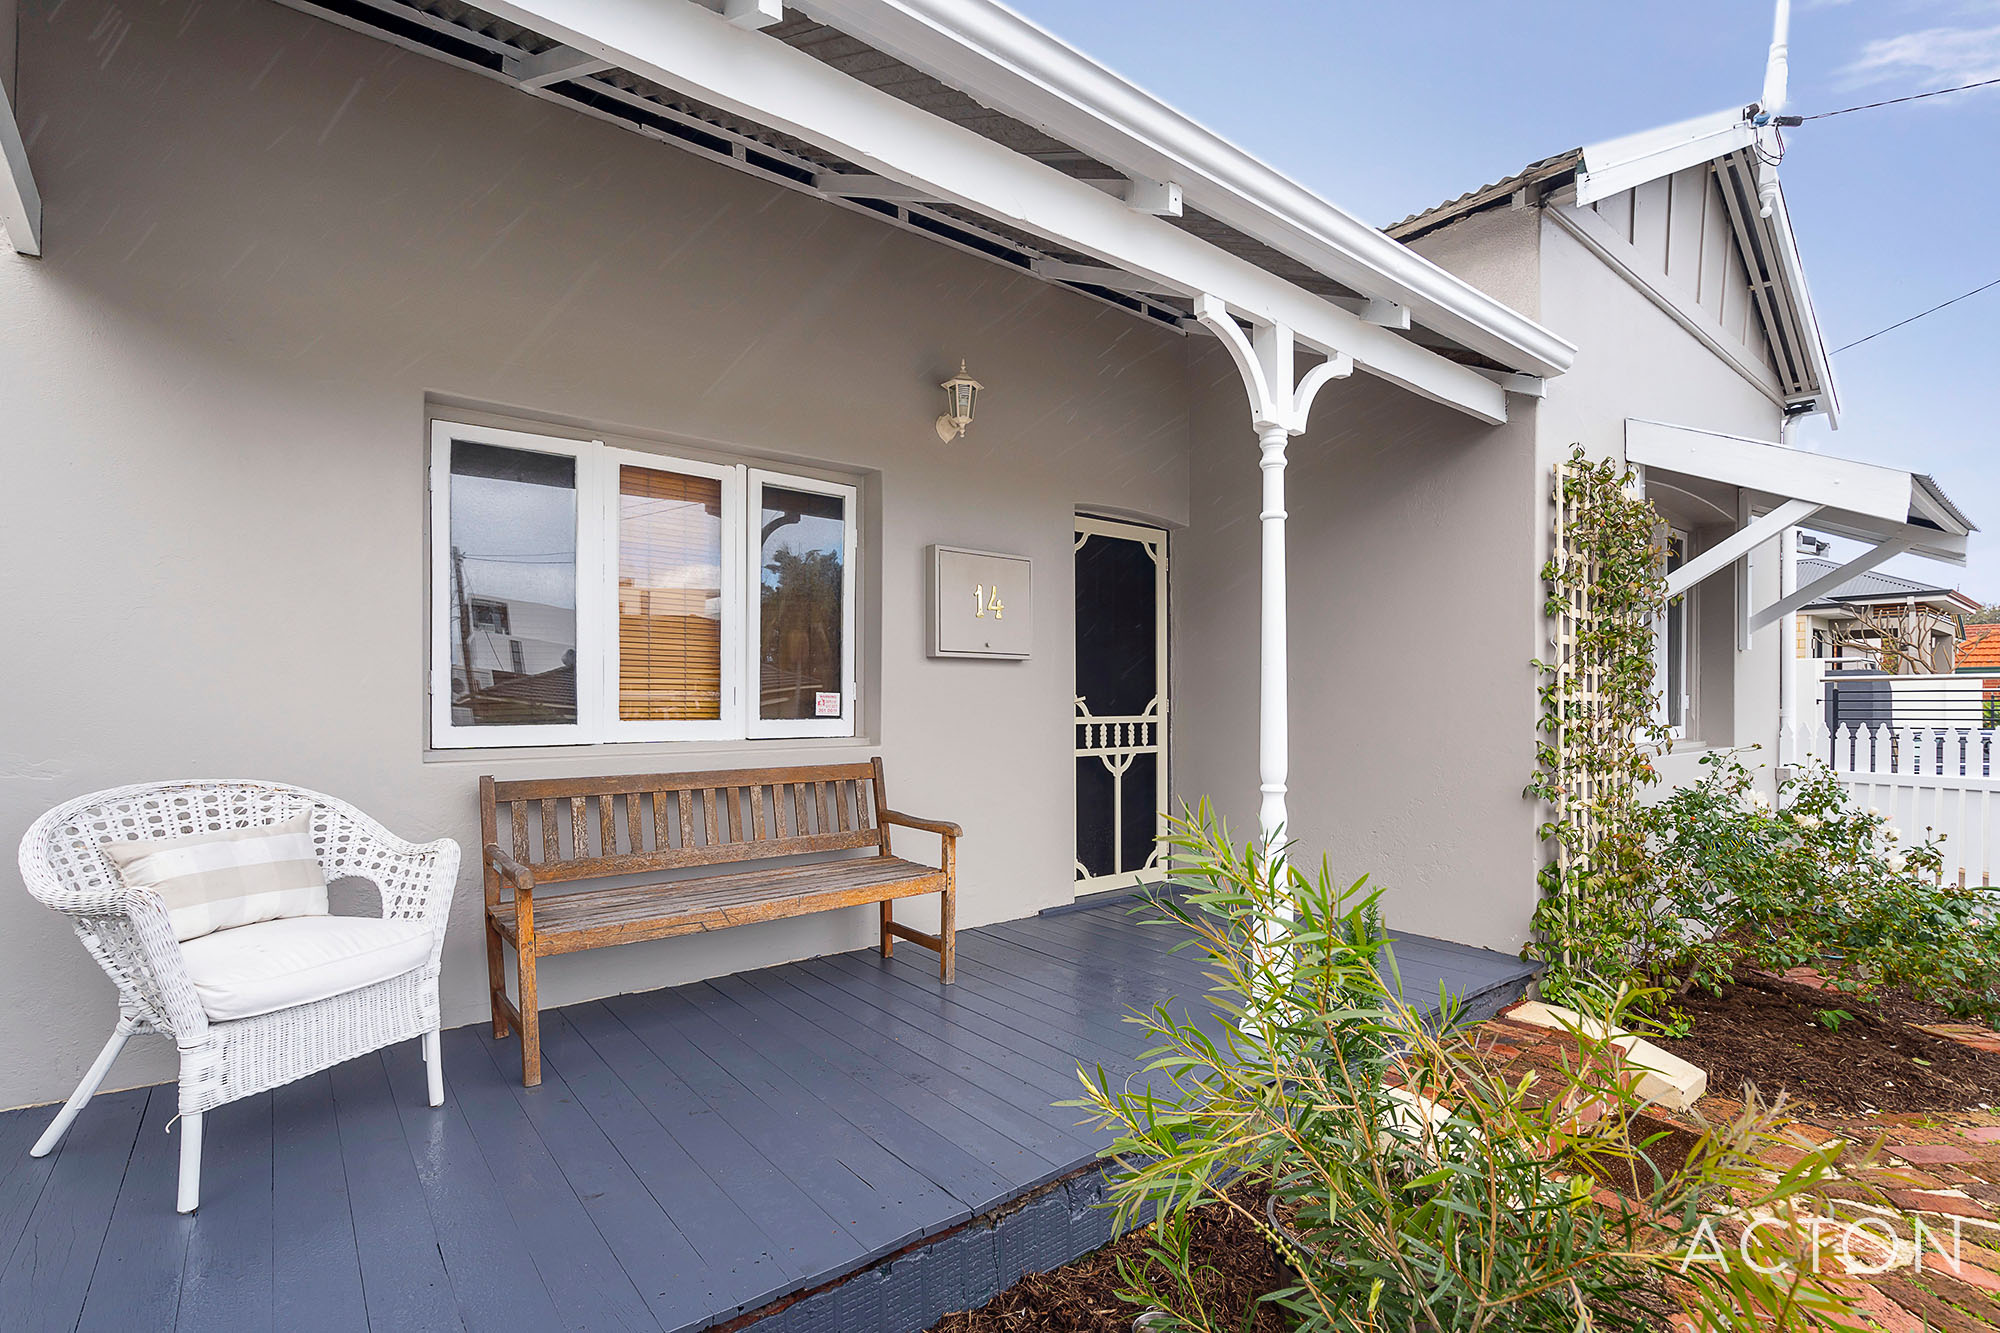 14 Burgess Street Leederville - House For Sale - 21532515 - ACTON Central